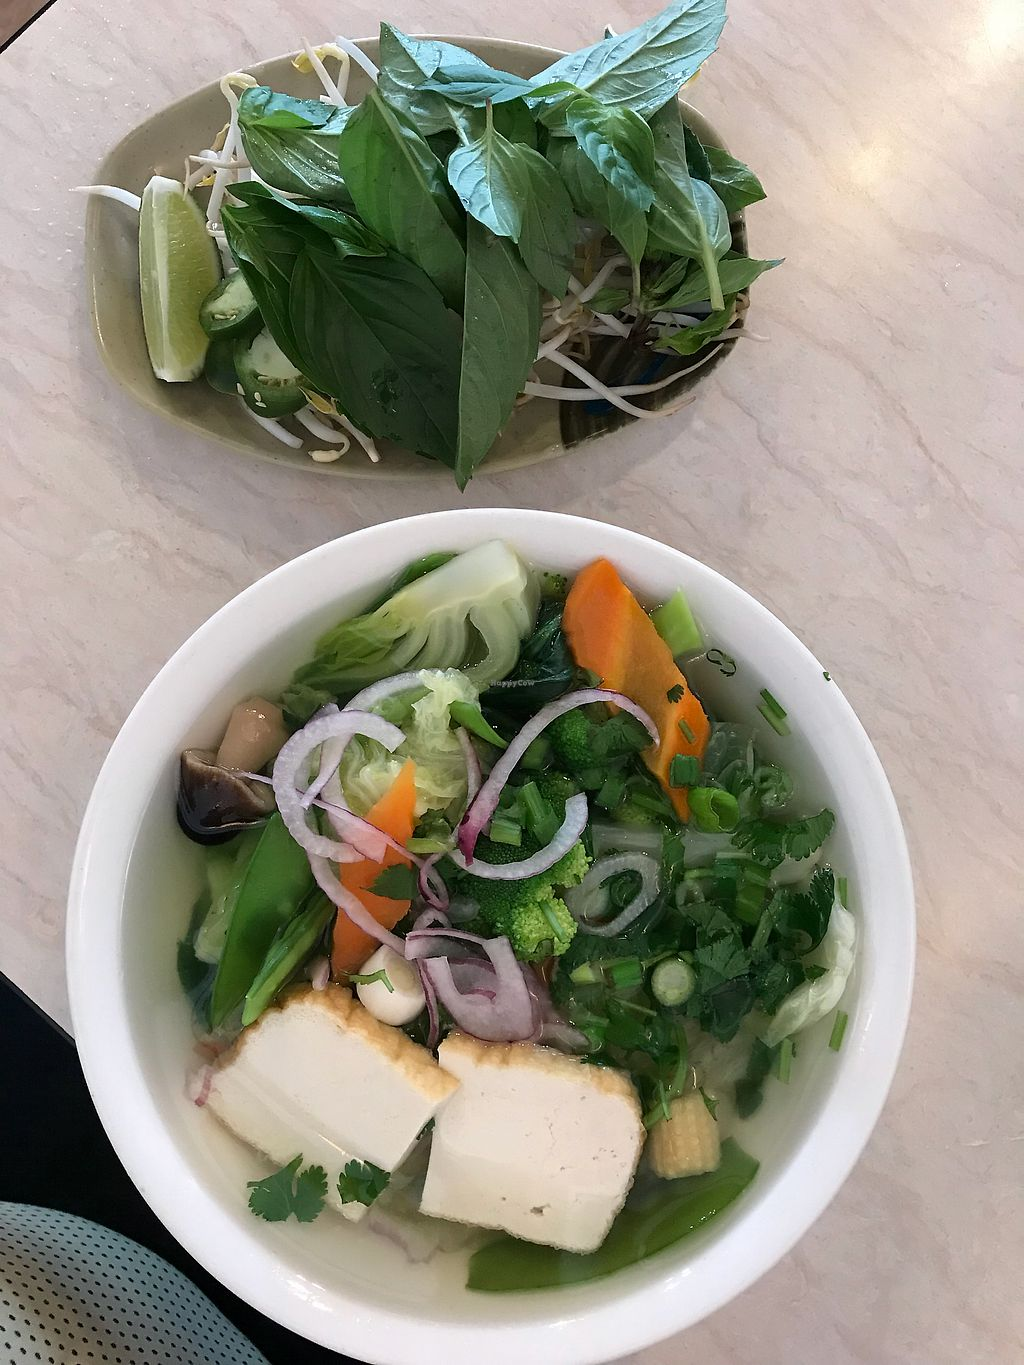 """Photo of Pho An & Sushi Bar  by <a href=""""/members/profile/GraceRountree"""">GraceRountree</a> <br/>Vegan Pho <br/> April 30, 2018  - <a href='/contact/abuse/image/105147/393194'>Report</a>"""